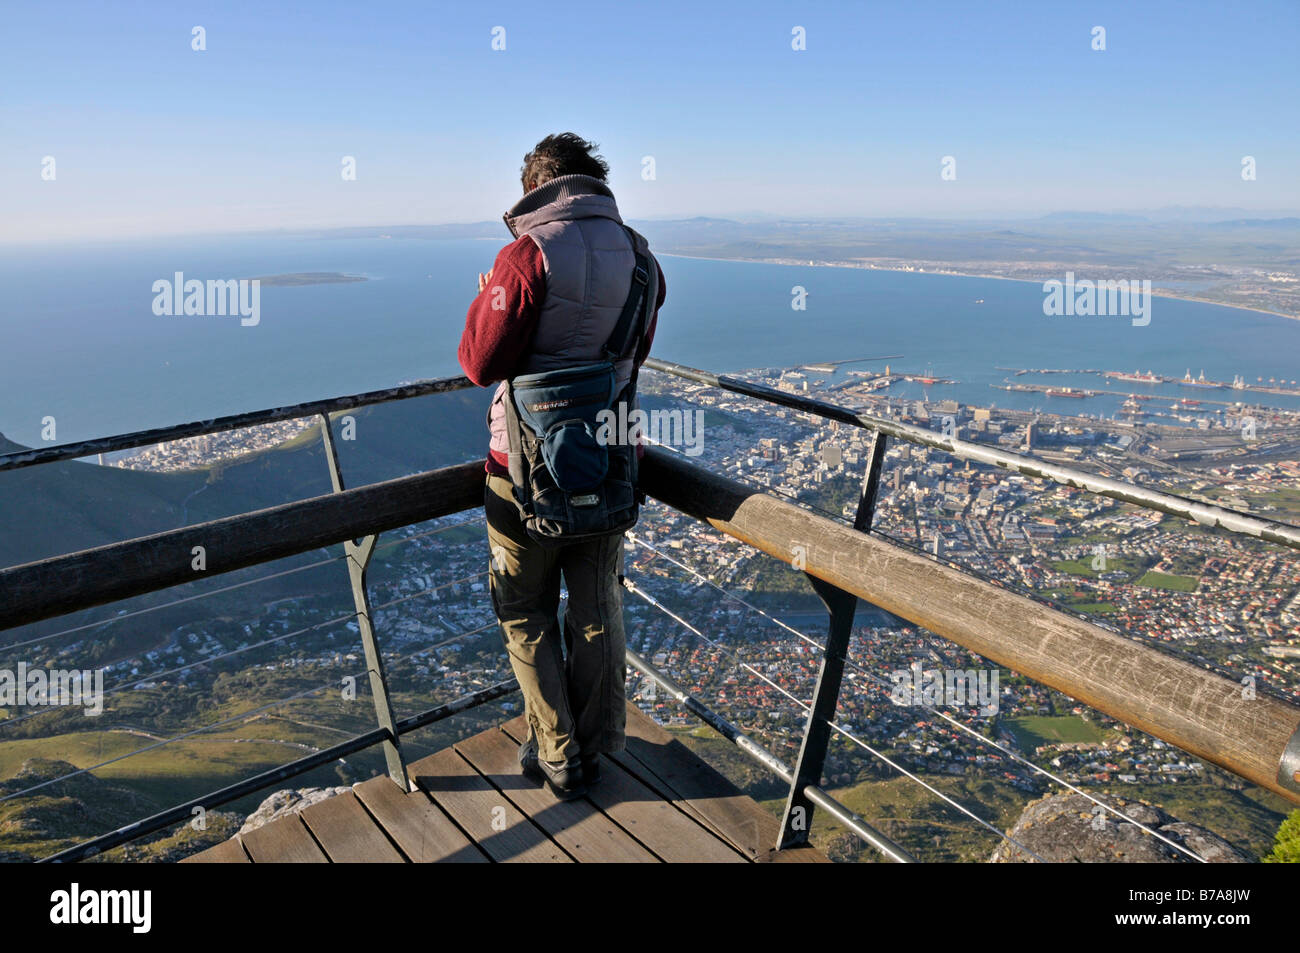 Woman looking onto Cape Town from the top of Table Mountain, South Africa - Stock Image